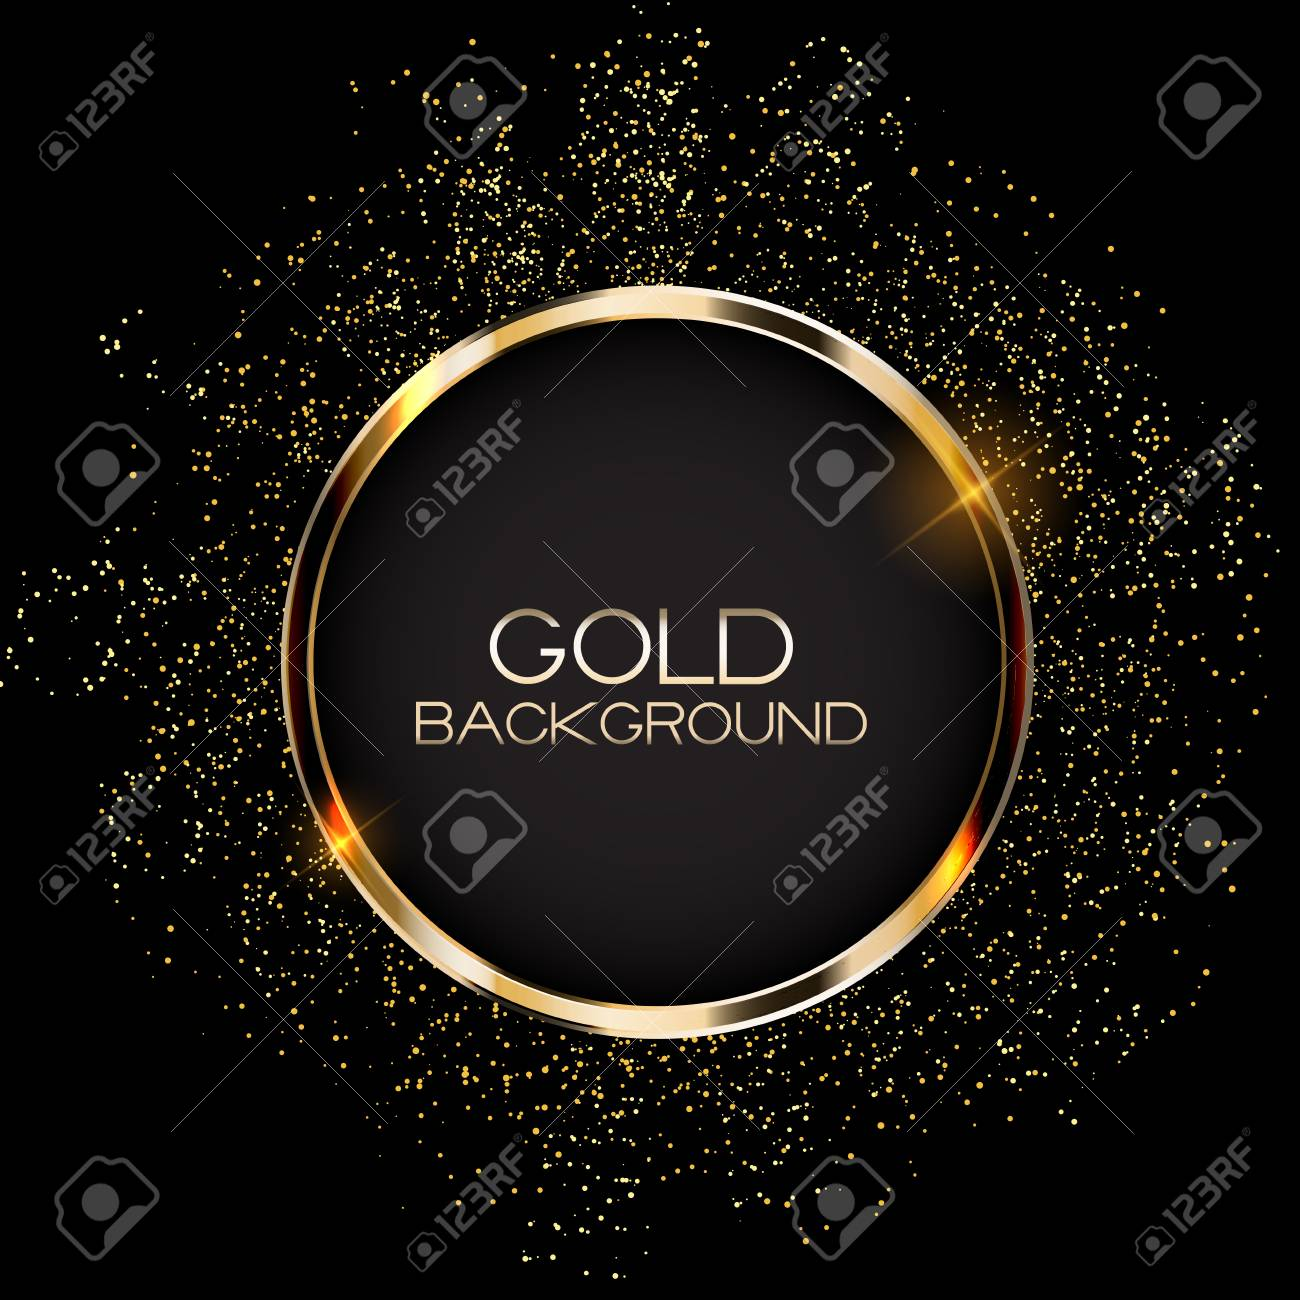 Abstract Card with Golden Frame Vector Illustration EPS10 - 115407411